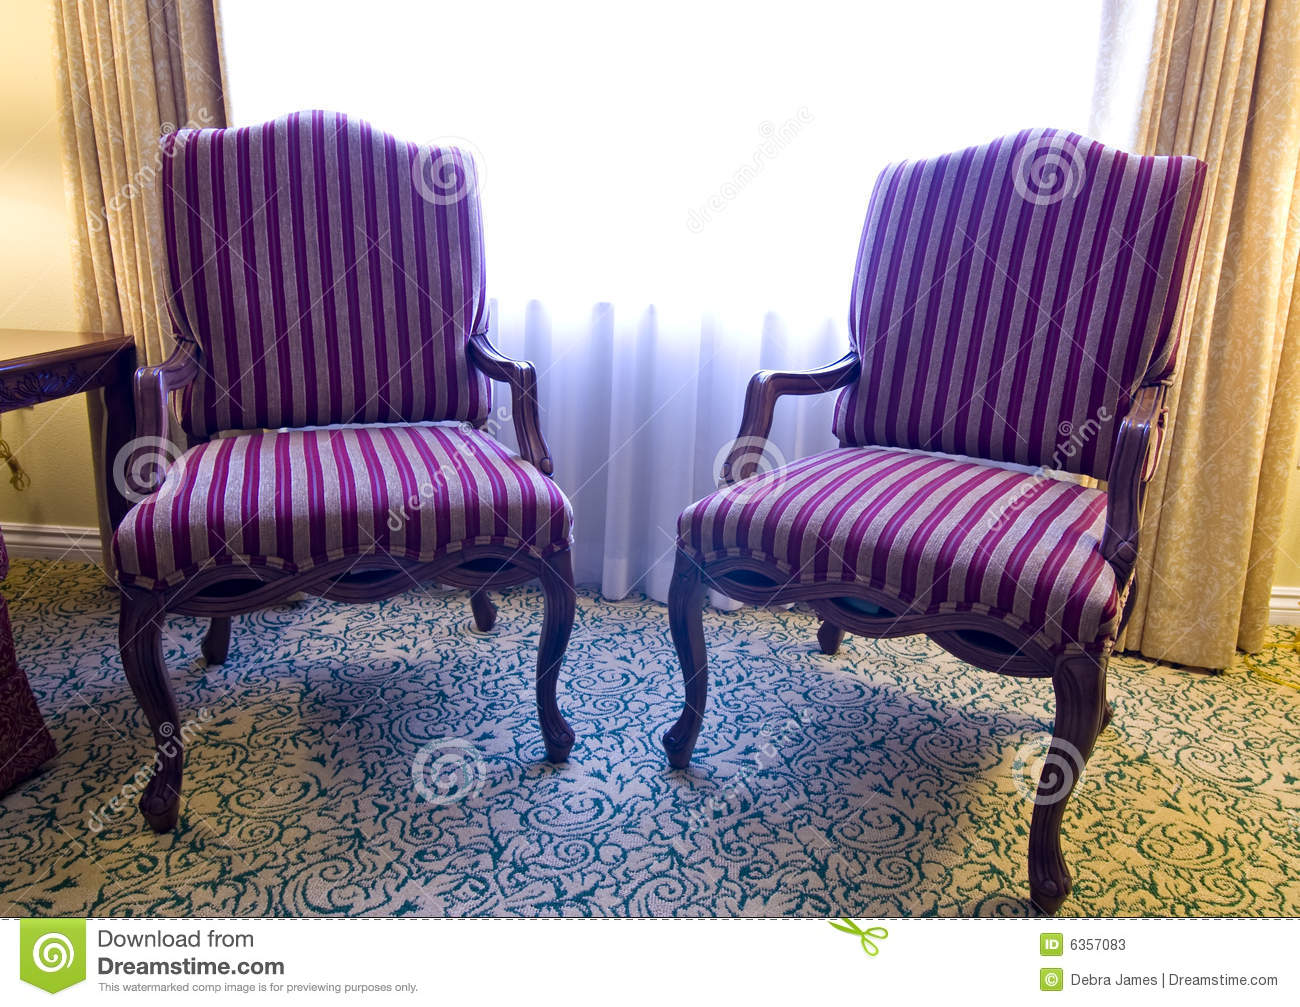 fabrics for chairs striped ergonomic chair requirements pair of fabric stock photos image 6357083